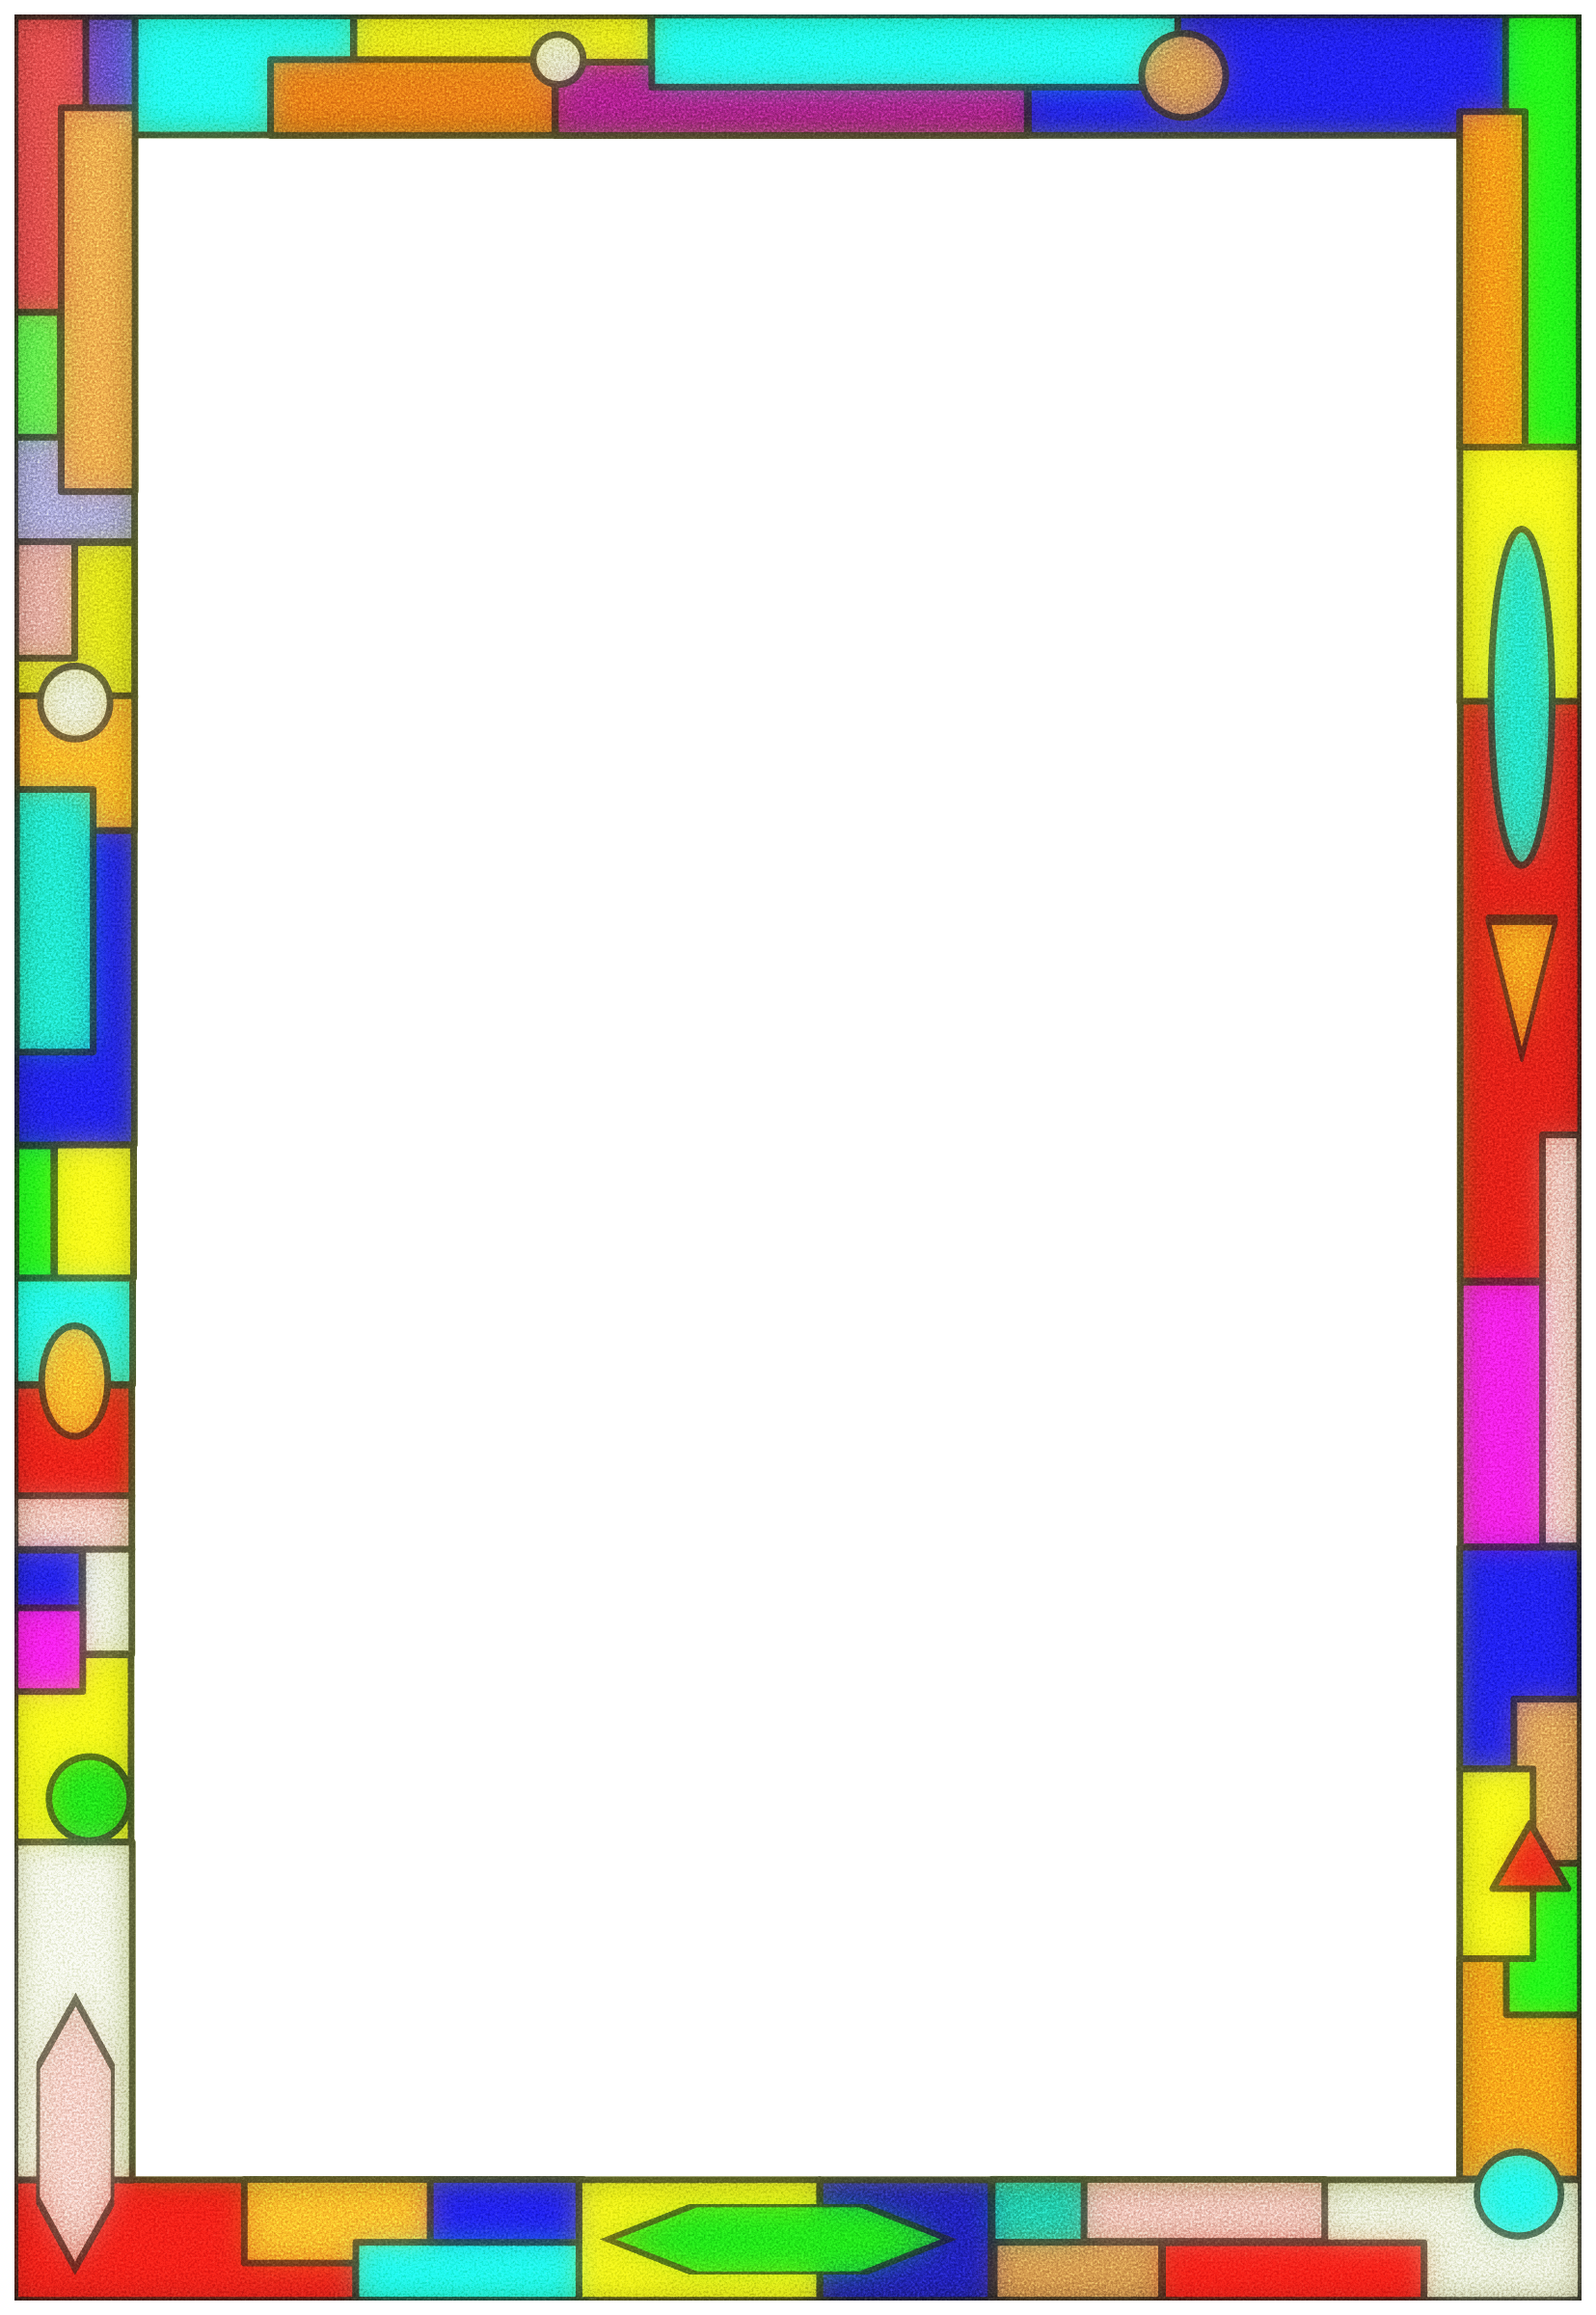 Stained Glass Border 01 by Arvin61r58